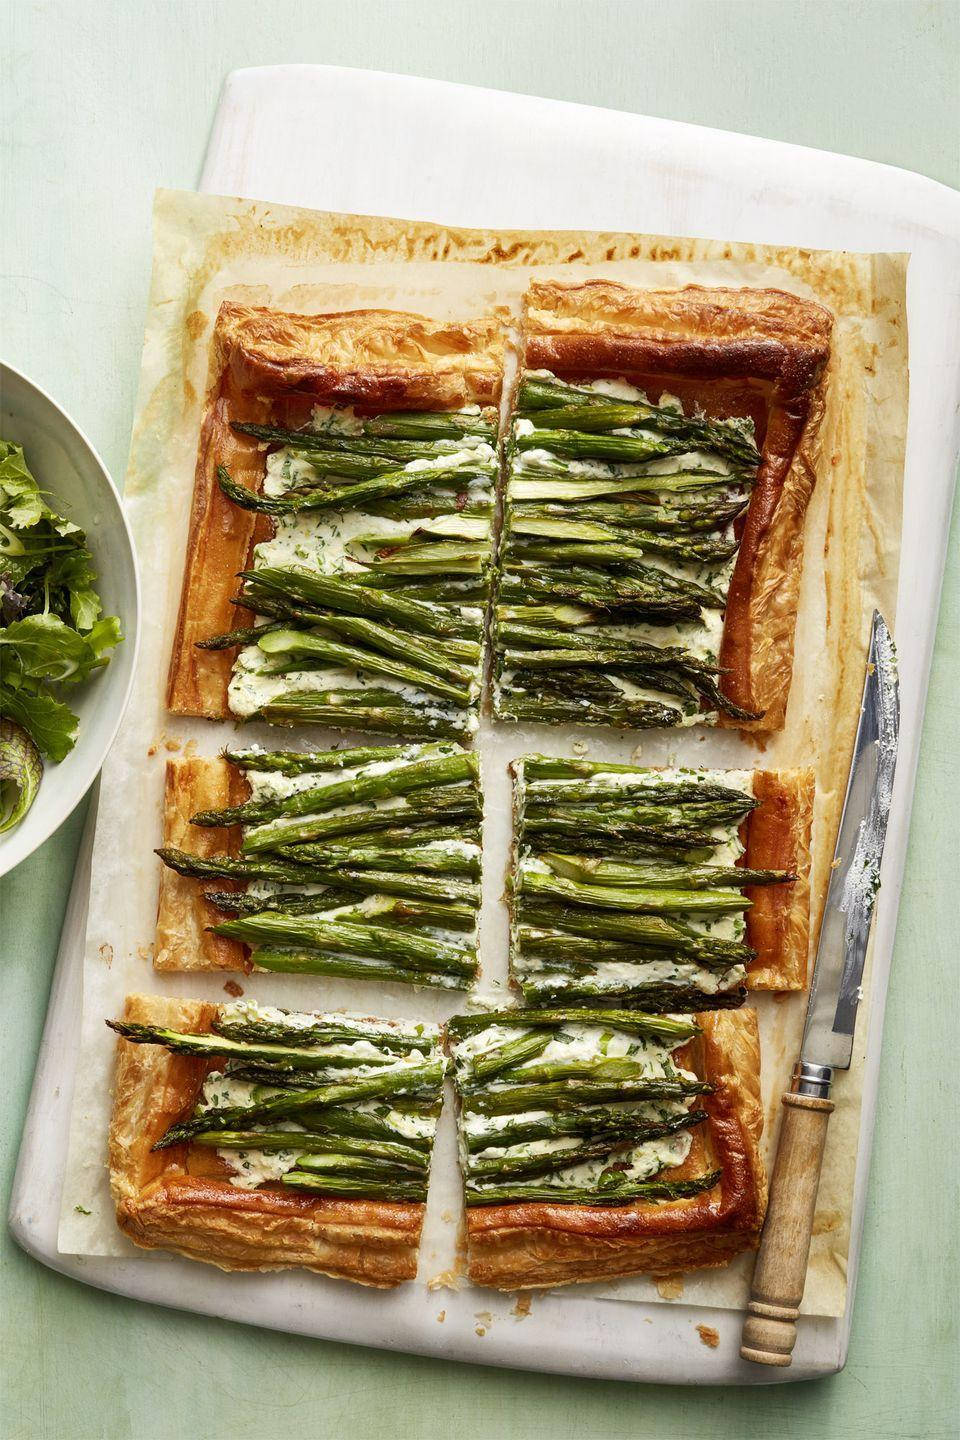 """<p>Layers of puff pastry and ricotta cheese make this veggie tart an easy, yummy vegetarian meal guaranteed to satisfy all.</p><p><a href=""""https://www.womansday.com/food-recipes/food-drinks/recipes/a58519/asparagus-ricotta-tart-recipe/"""" rel=""""nofollow noopener"""" target=""""_blank"""" data-ylk=""""slk:Get the Asparagus and Ricotta Tart recipe."""" class=""""link rapid-noclick-resp""""><em>Get the Asparagus and Ricotta Tart recipe.</em></a></p>"""